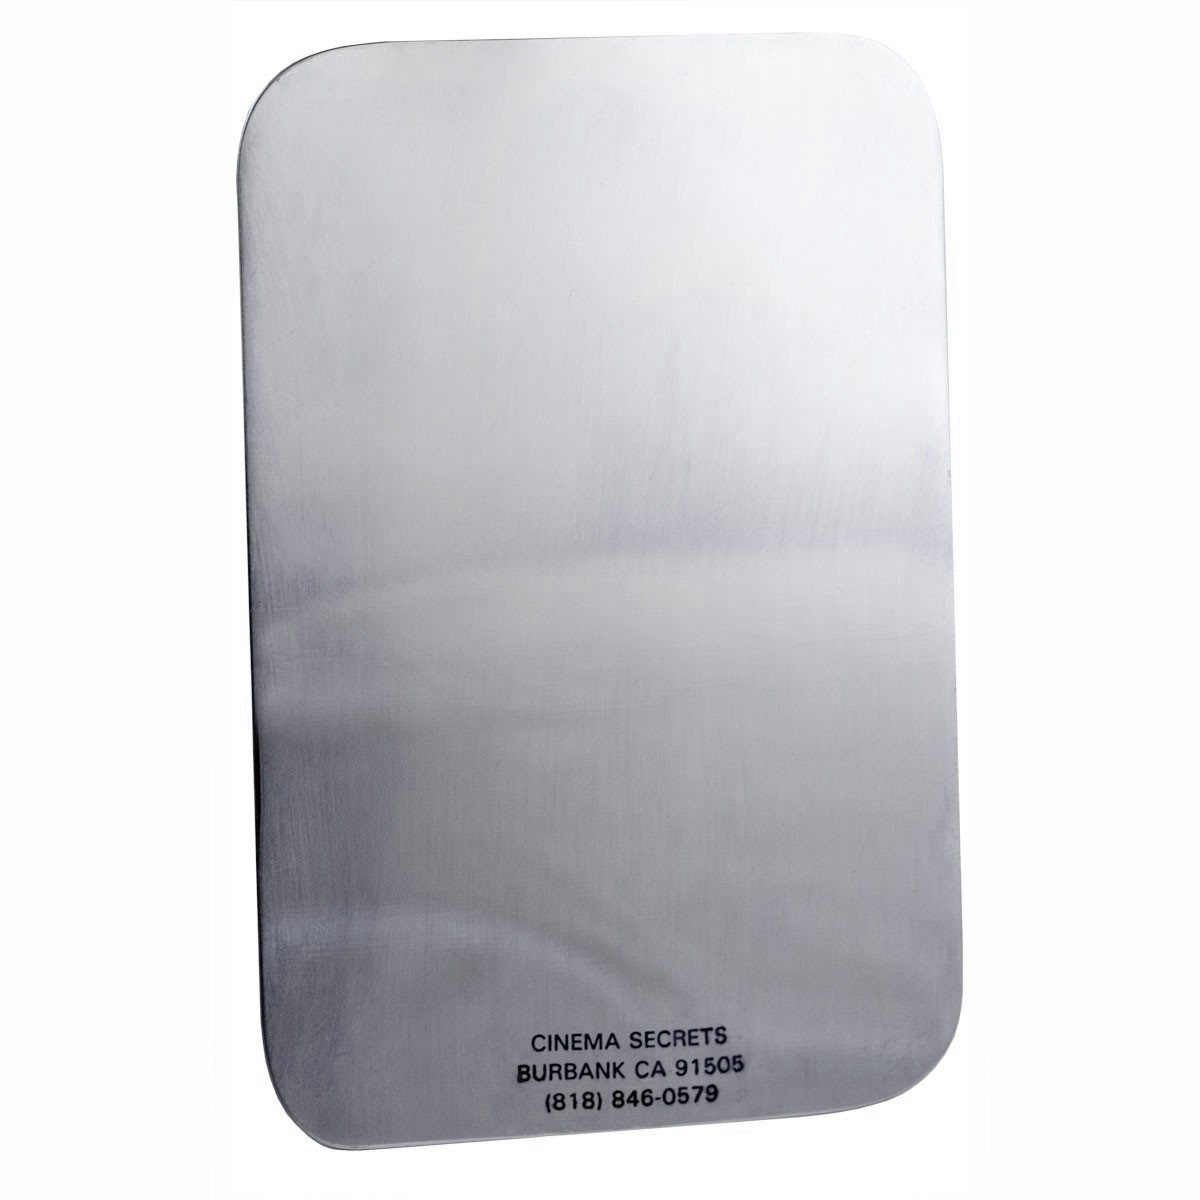 THE ORIGINAL STAINLESS STEEL PALETTE